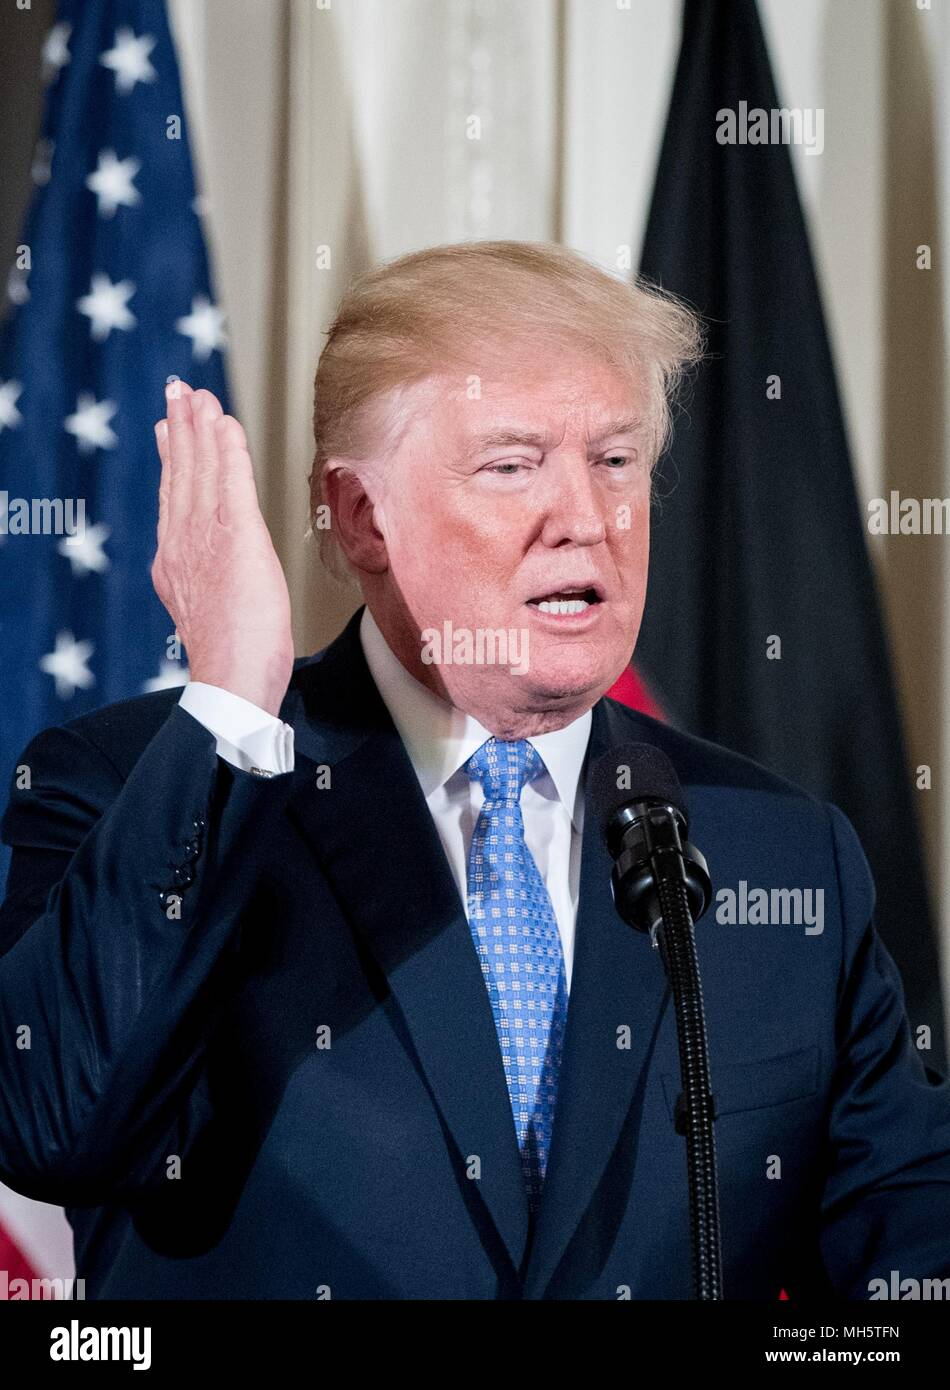 27 April 2018, USA, Washington: US President Donald Trump speaks to representatives of the media during a press conference in the White House. Photo: Kay Nietfeld/dpa - Stock Image